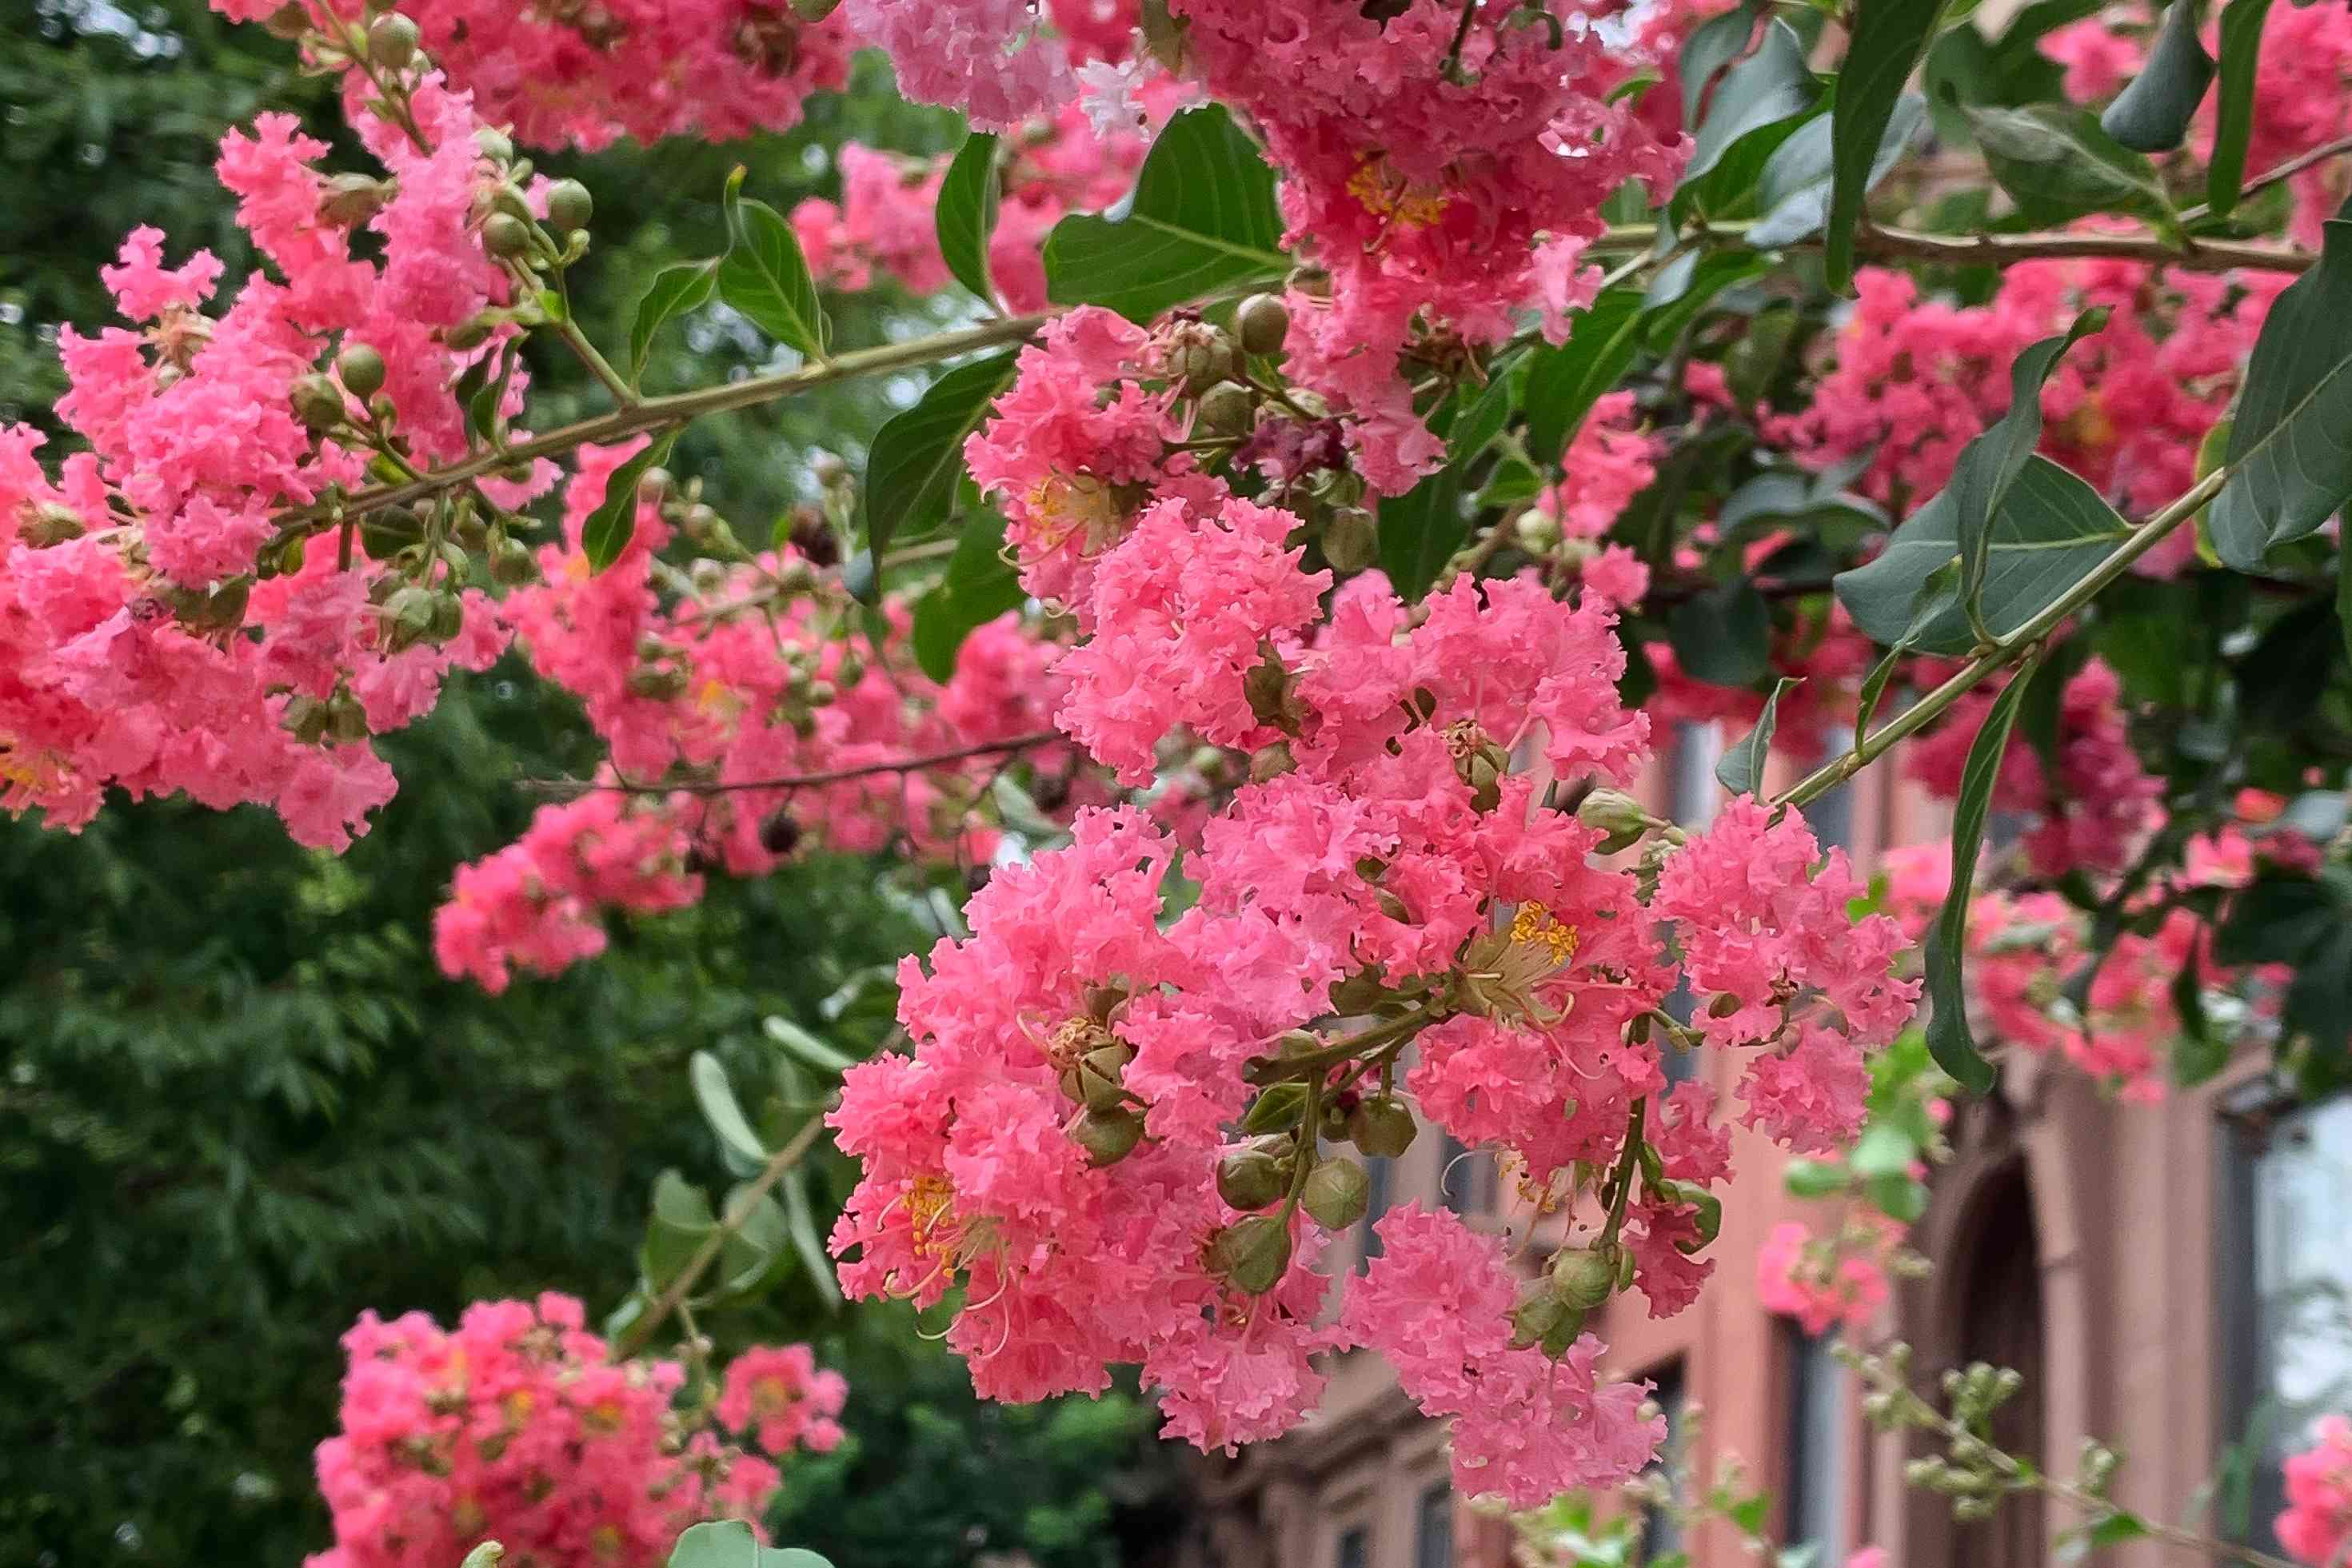 Crape myrtle tree branches with bright pink flowers clustered near leaves